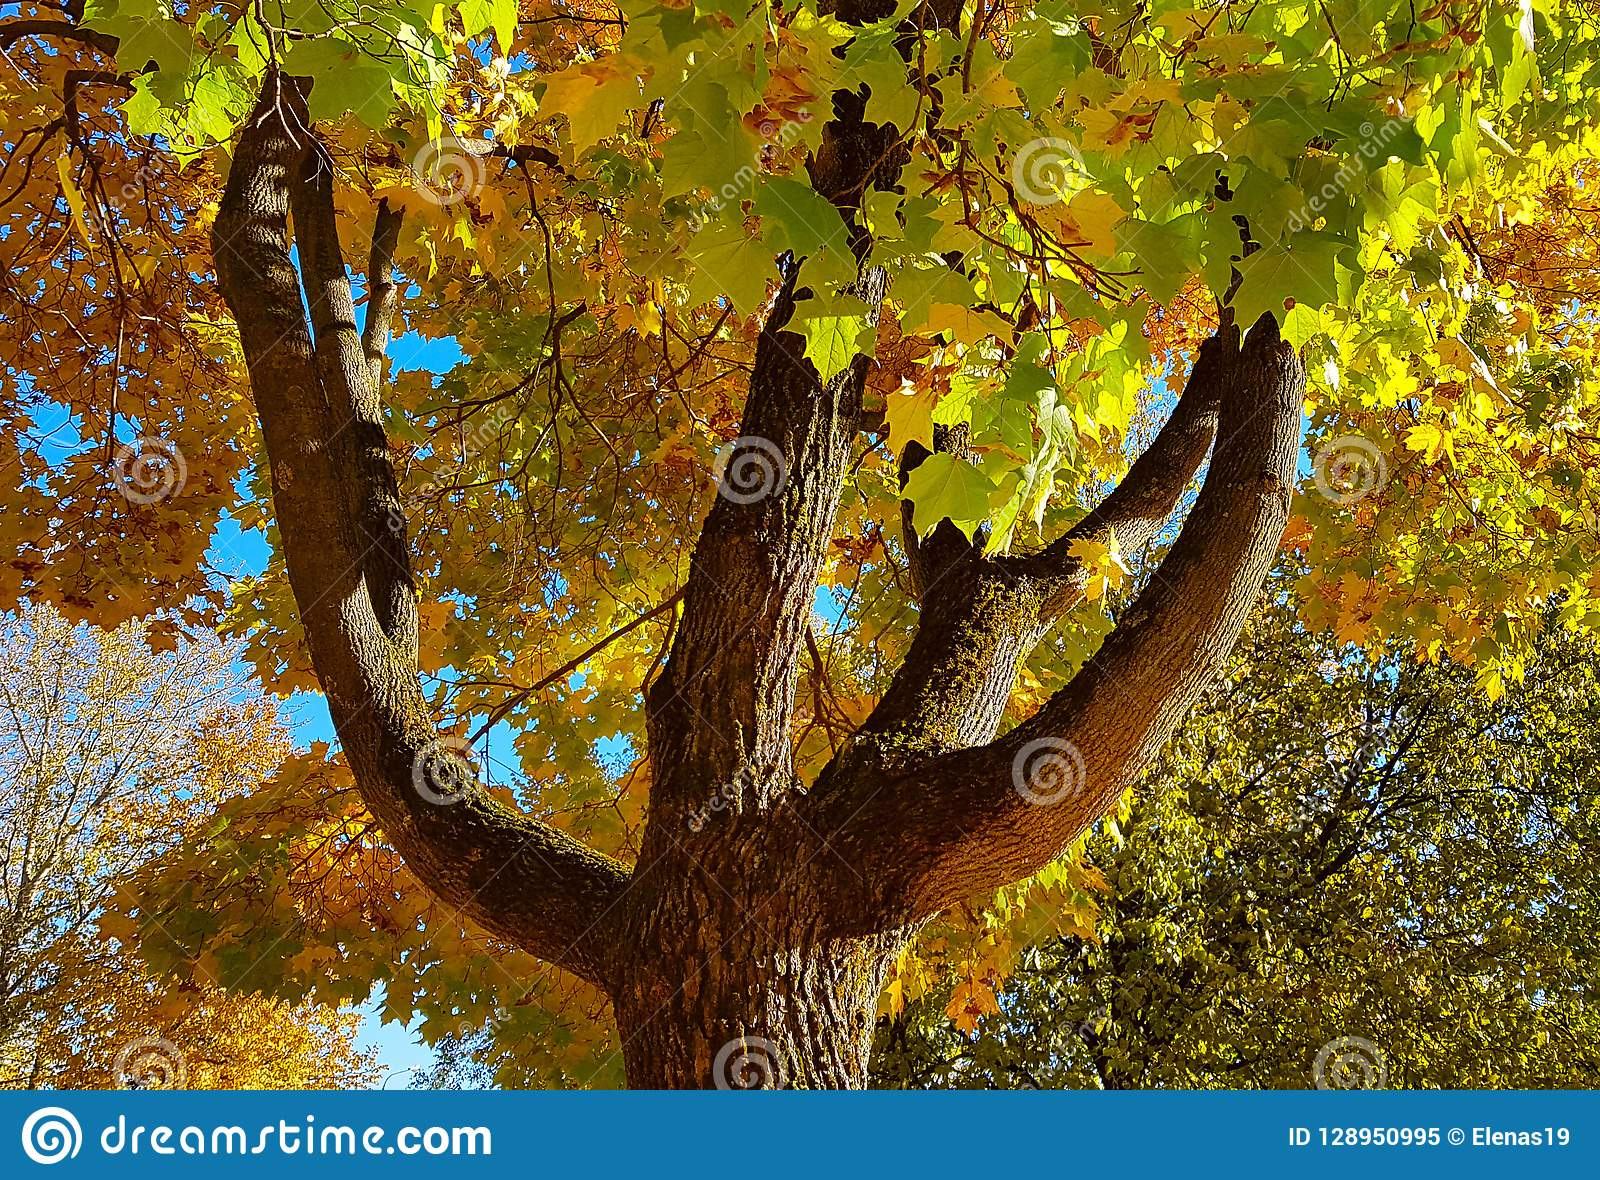 Branches and trunk with bright yellow and green leaves of autumn maple tree against the blue sky background. Bottom view